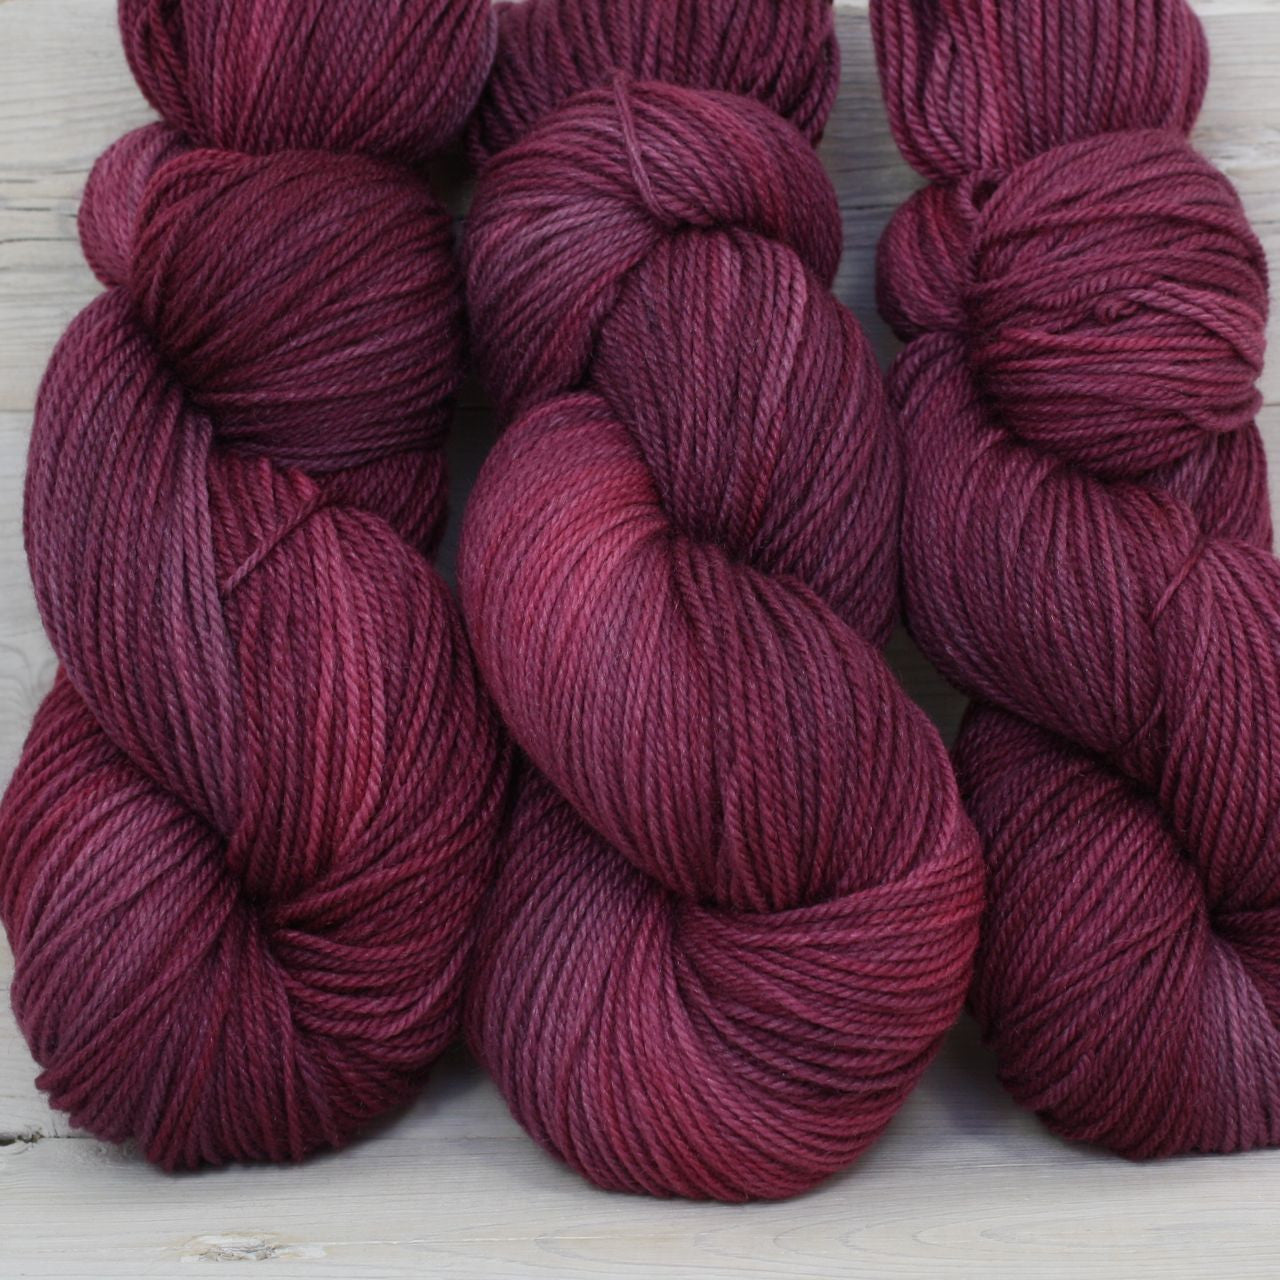 Zeta Yarn | Colorway: Sugar Plum